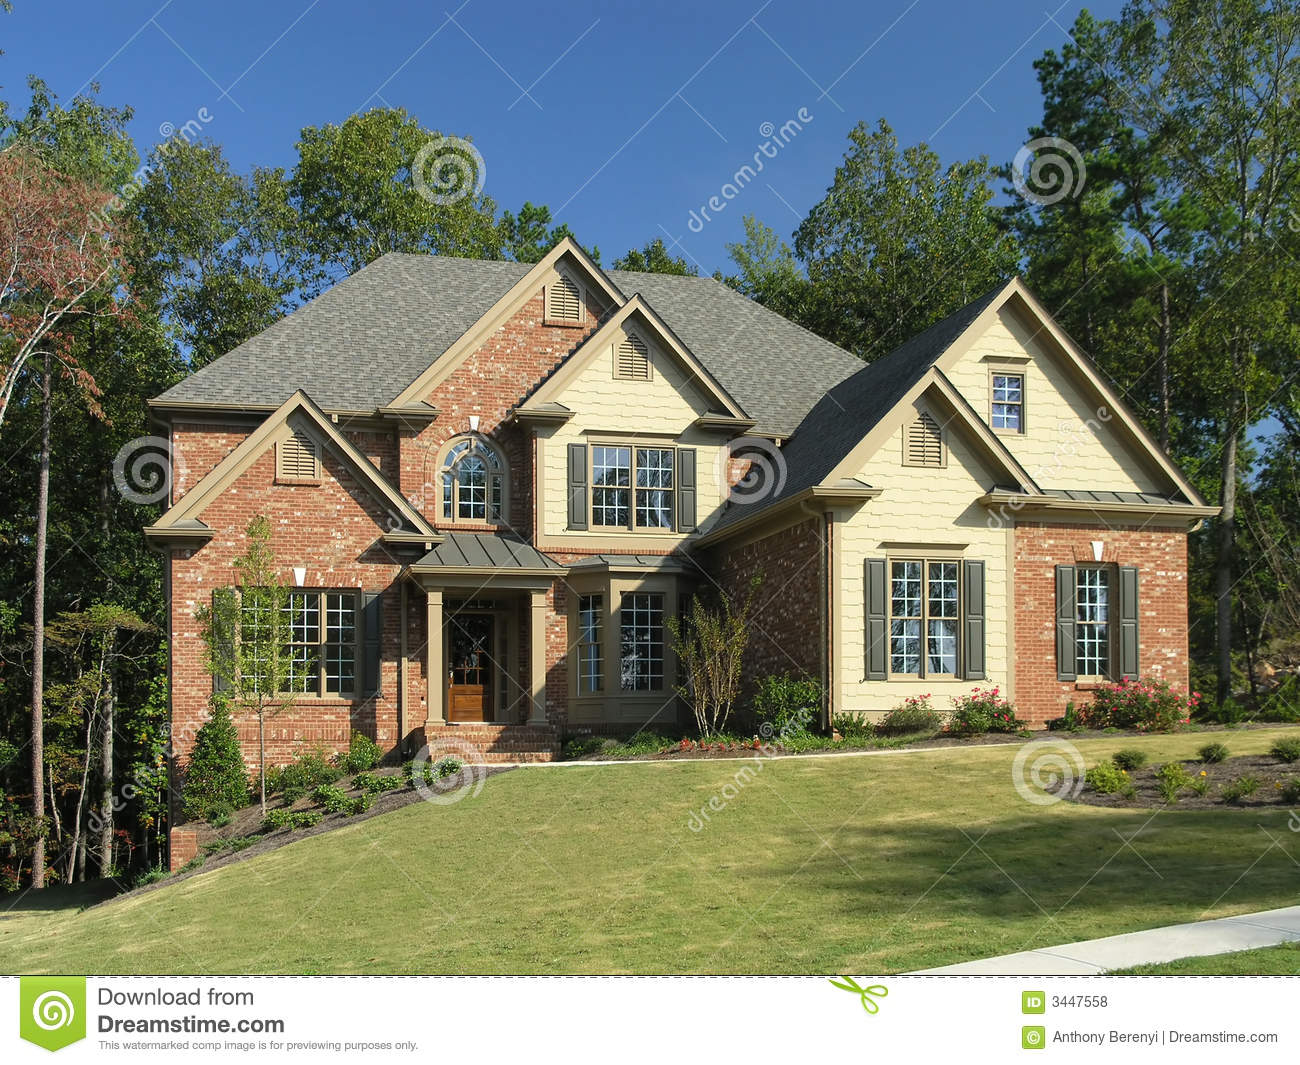 Luxury Home Exterior 11 Royalty Free Stock Photos Image